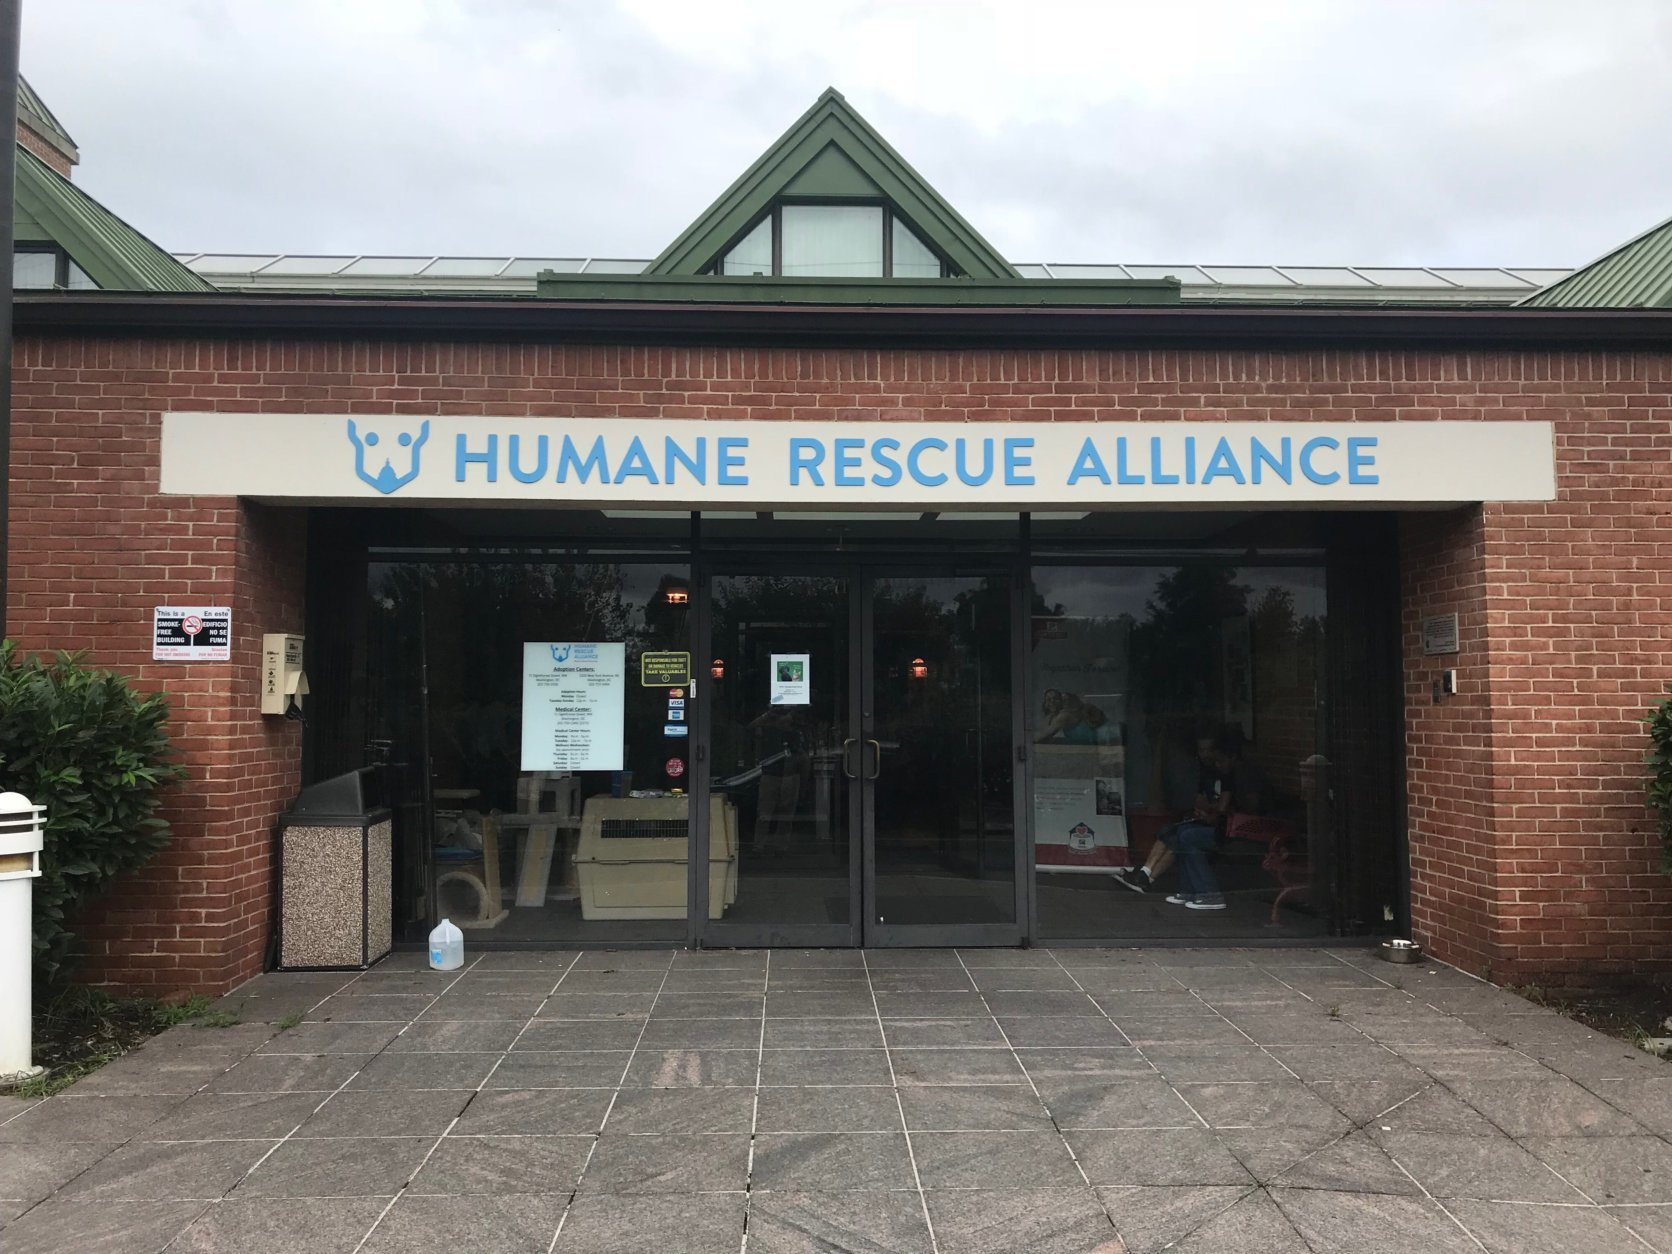 Have you been thinking about expanding your family? The Humane Rescue Alliance in D.C. is urging people looking for pets to adopt from their shelters in order to make room for more animals coming in after evacuations due to Tropical Storm Florence. (WTOP/Dick Uliano)